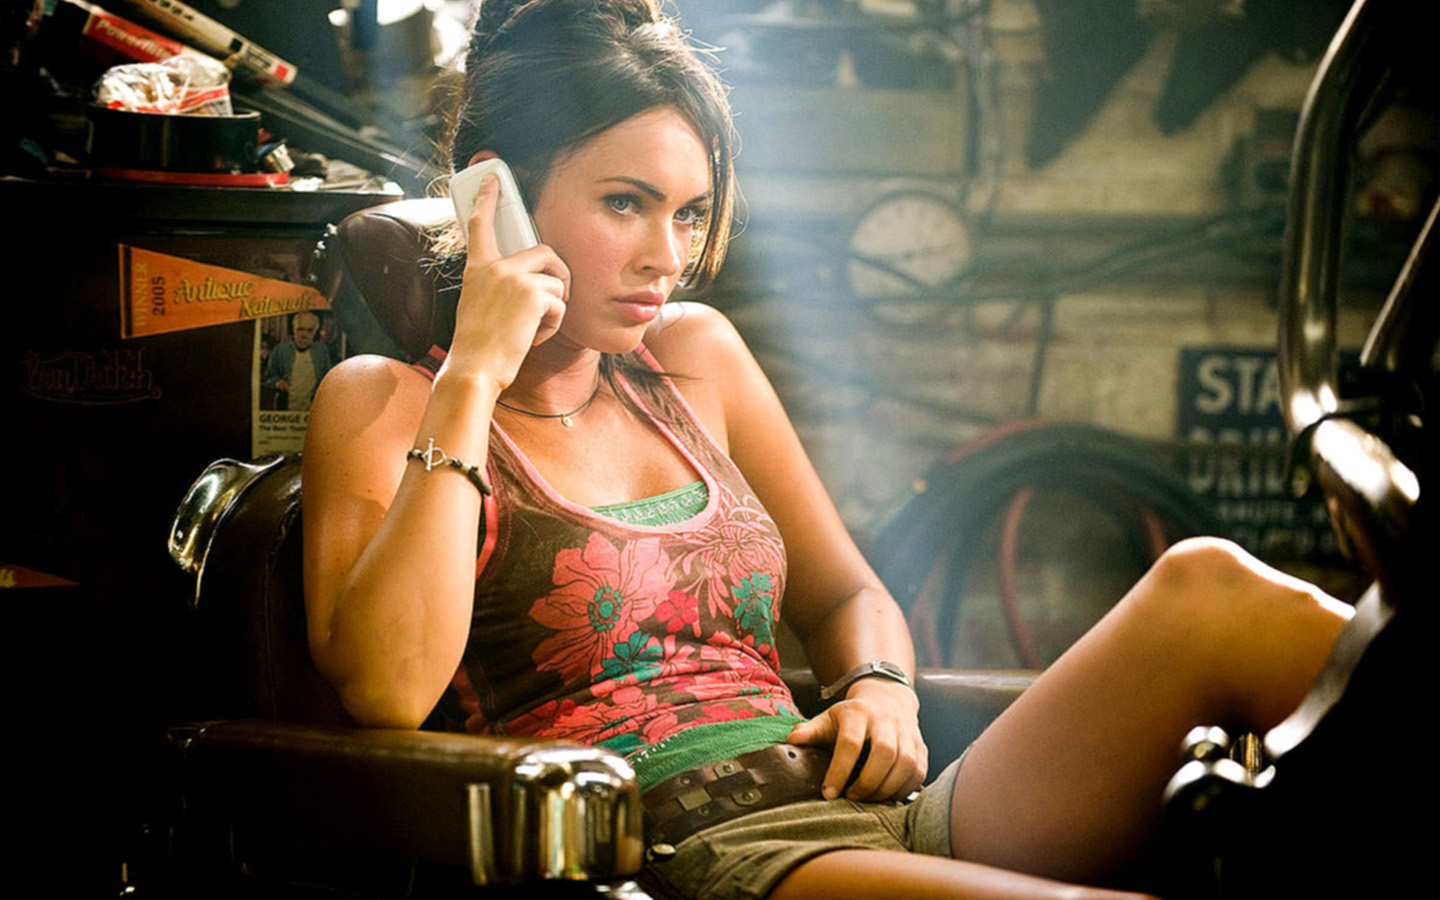 Megan Fox Wallpapers HD   Wallpapers for dekstop 1440x900